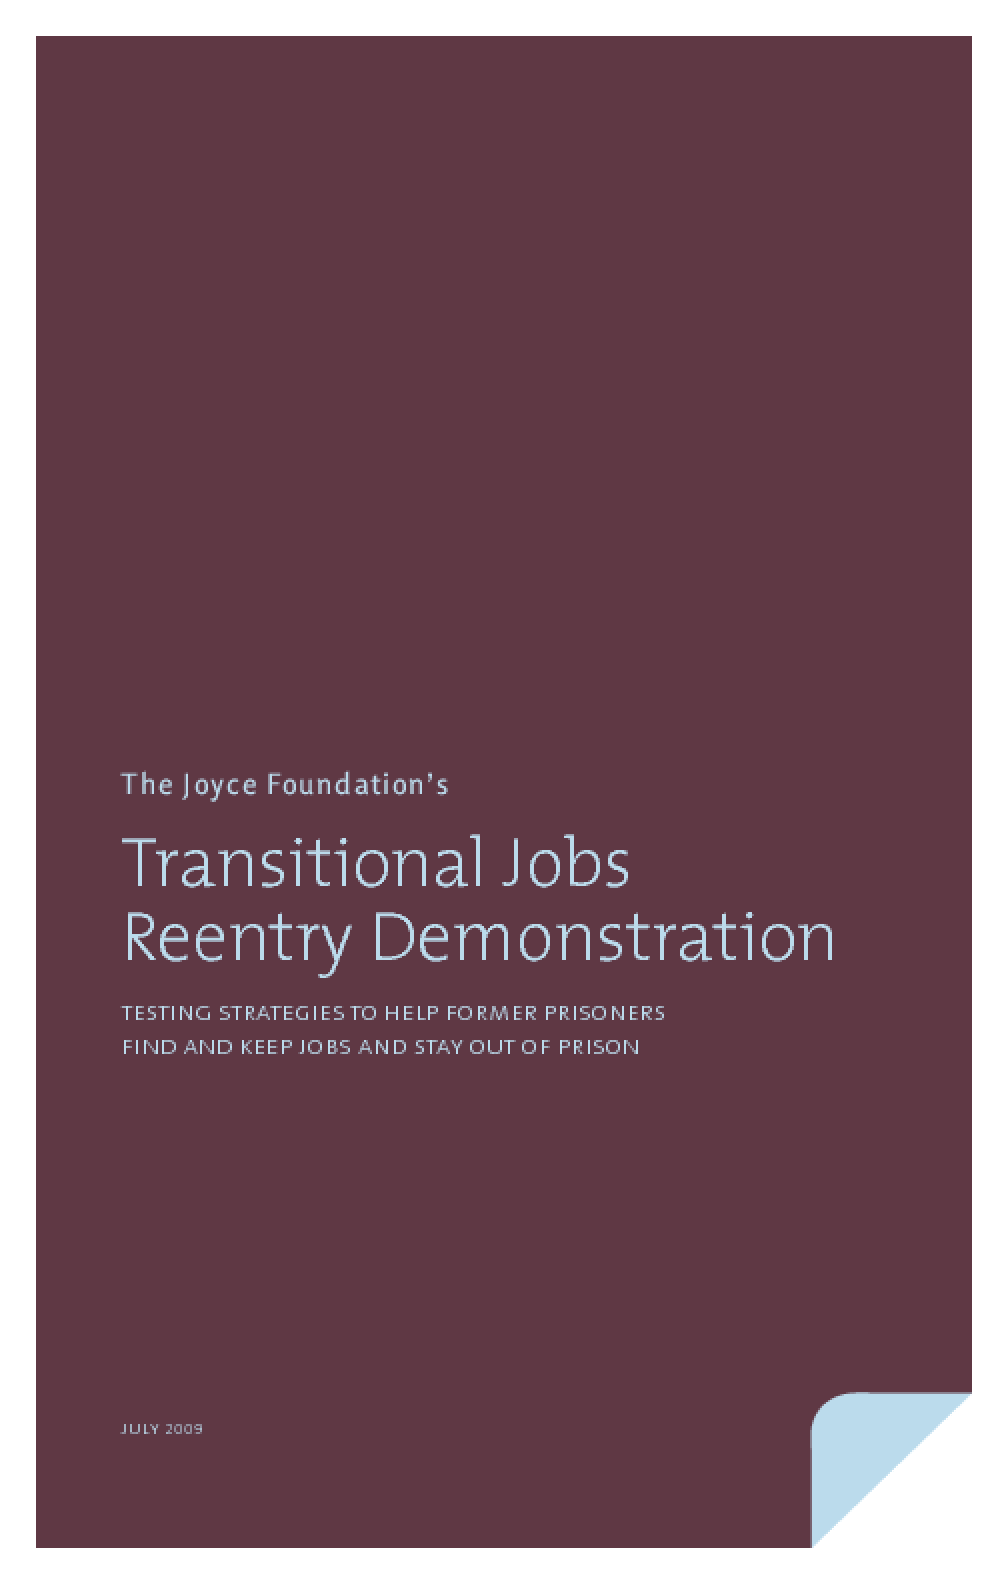 The Joyce Foundation's Transitional Jobs Reentry Demonstration: Testing Strategies to Help Former Prisoners Find and Keep Jobs and Stay Out of Prison